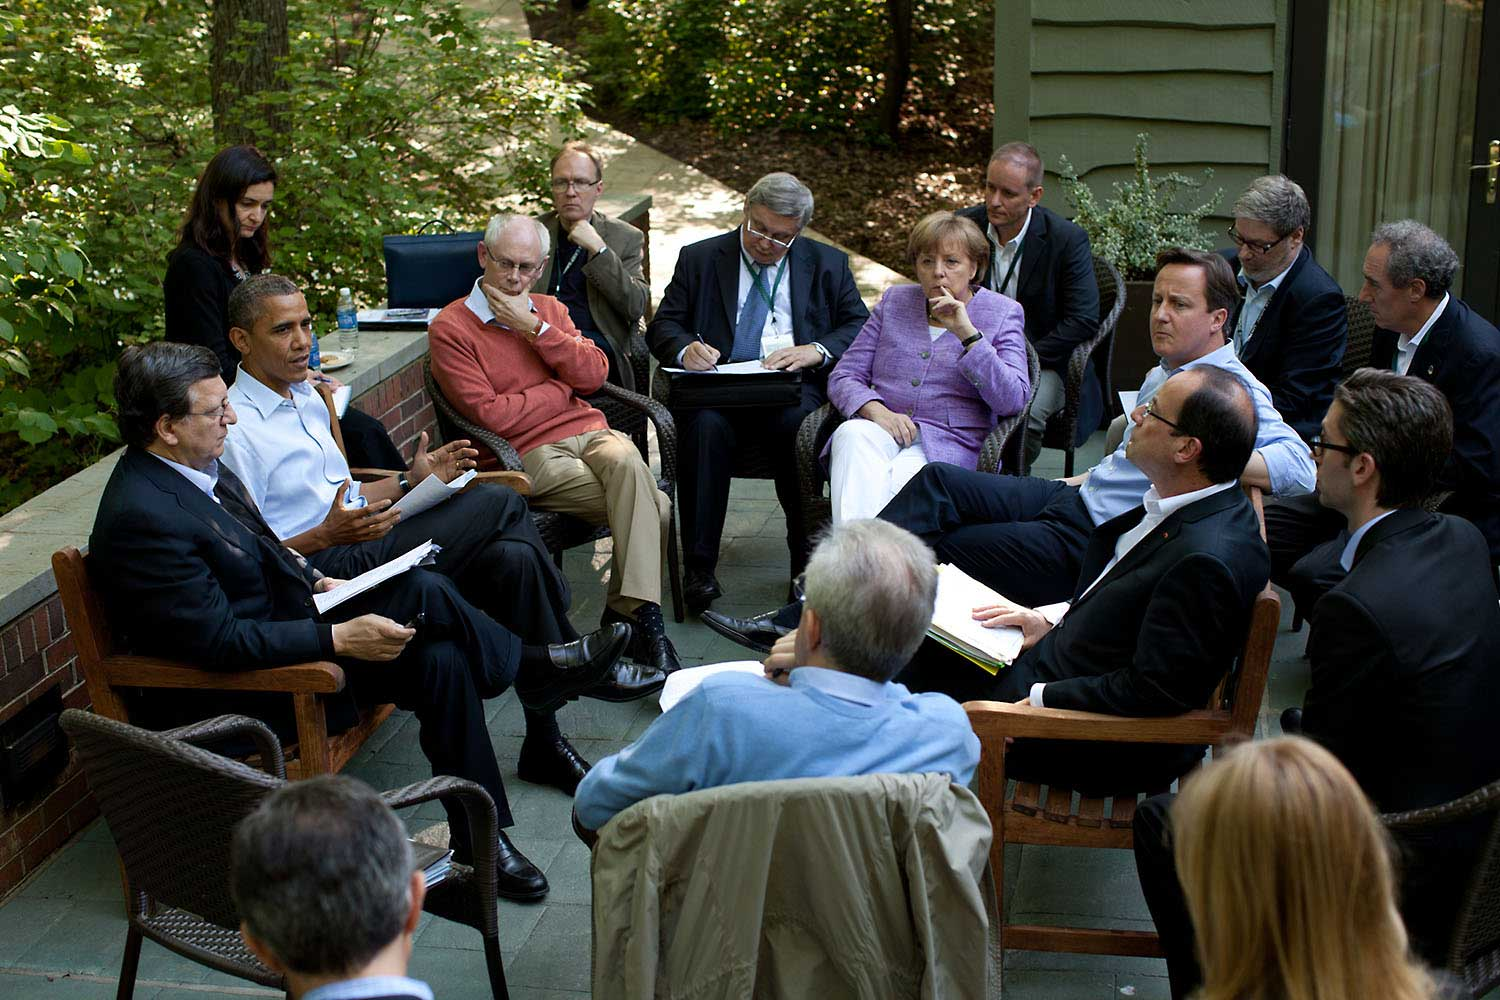 President Obama meets with European leaders on the Laurel Cabin patio during the G8 Summit at Camp David, Md., May 19, 2012.